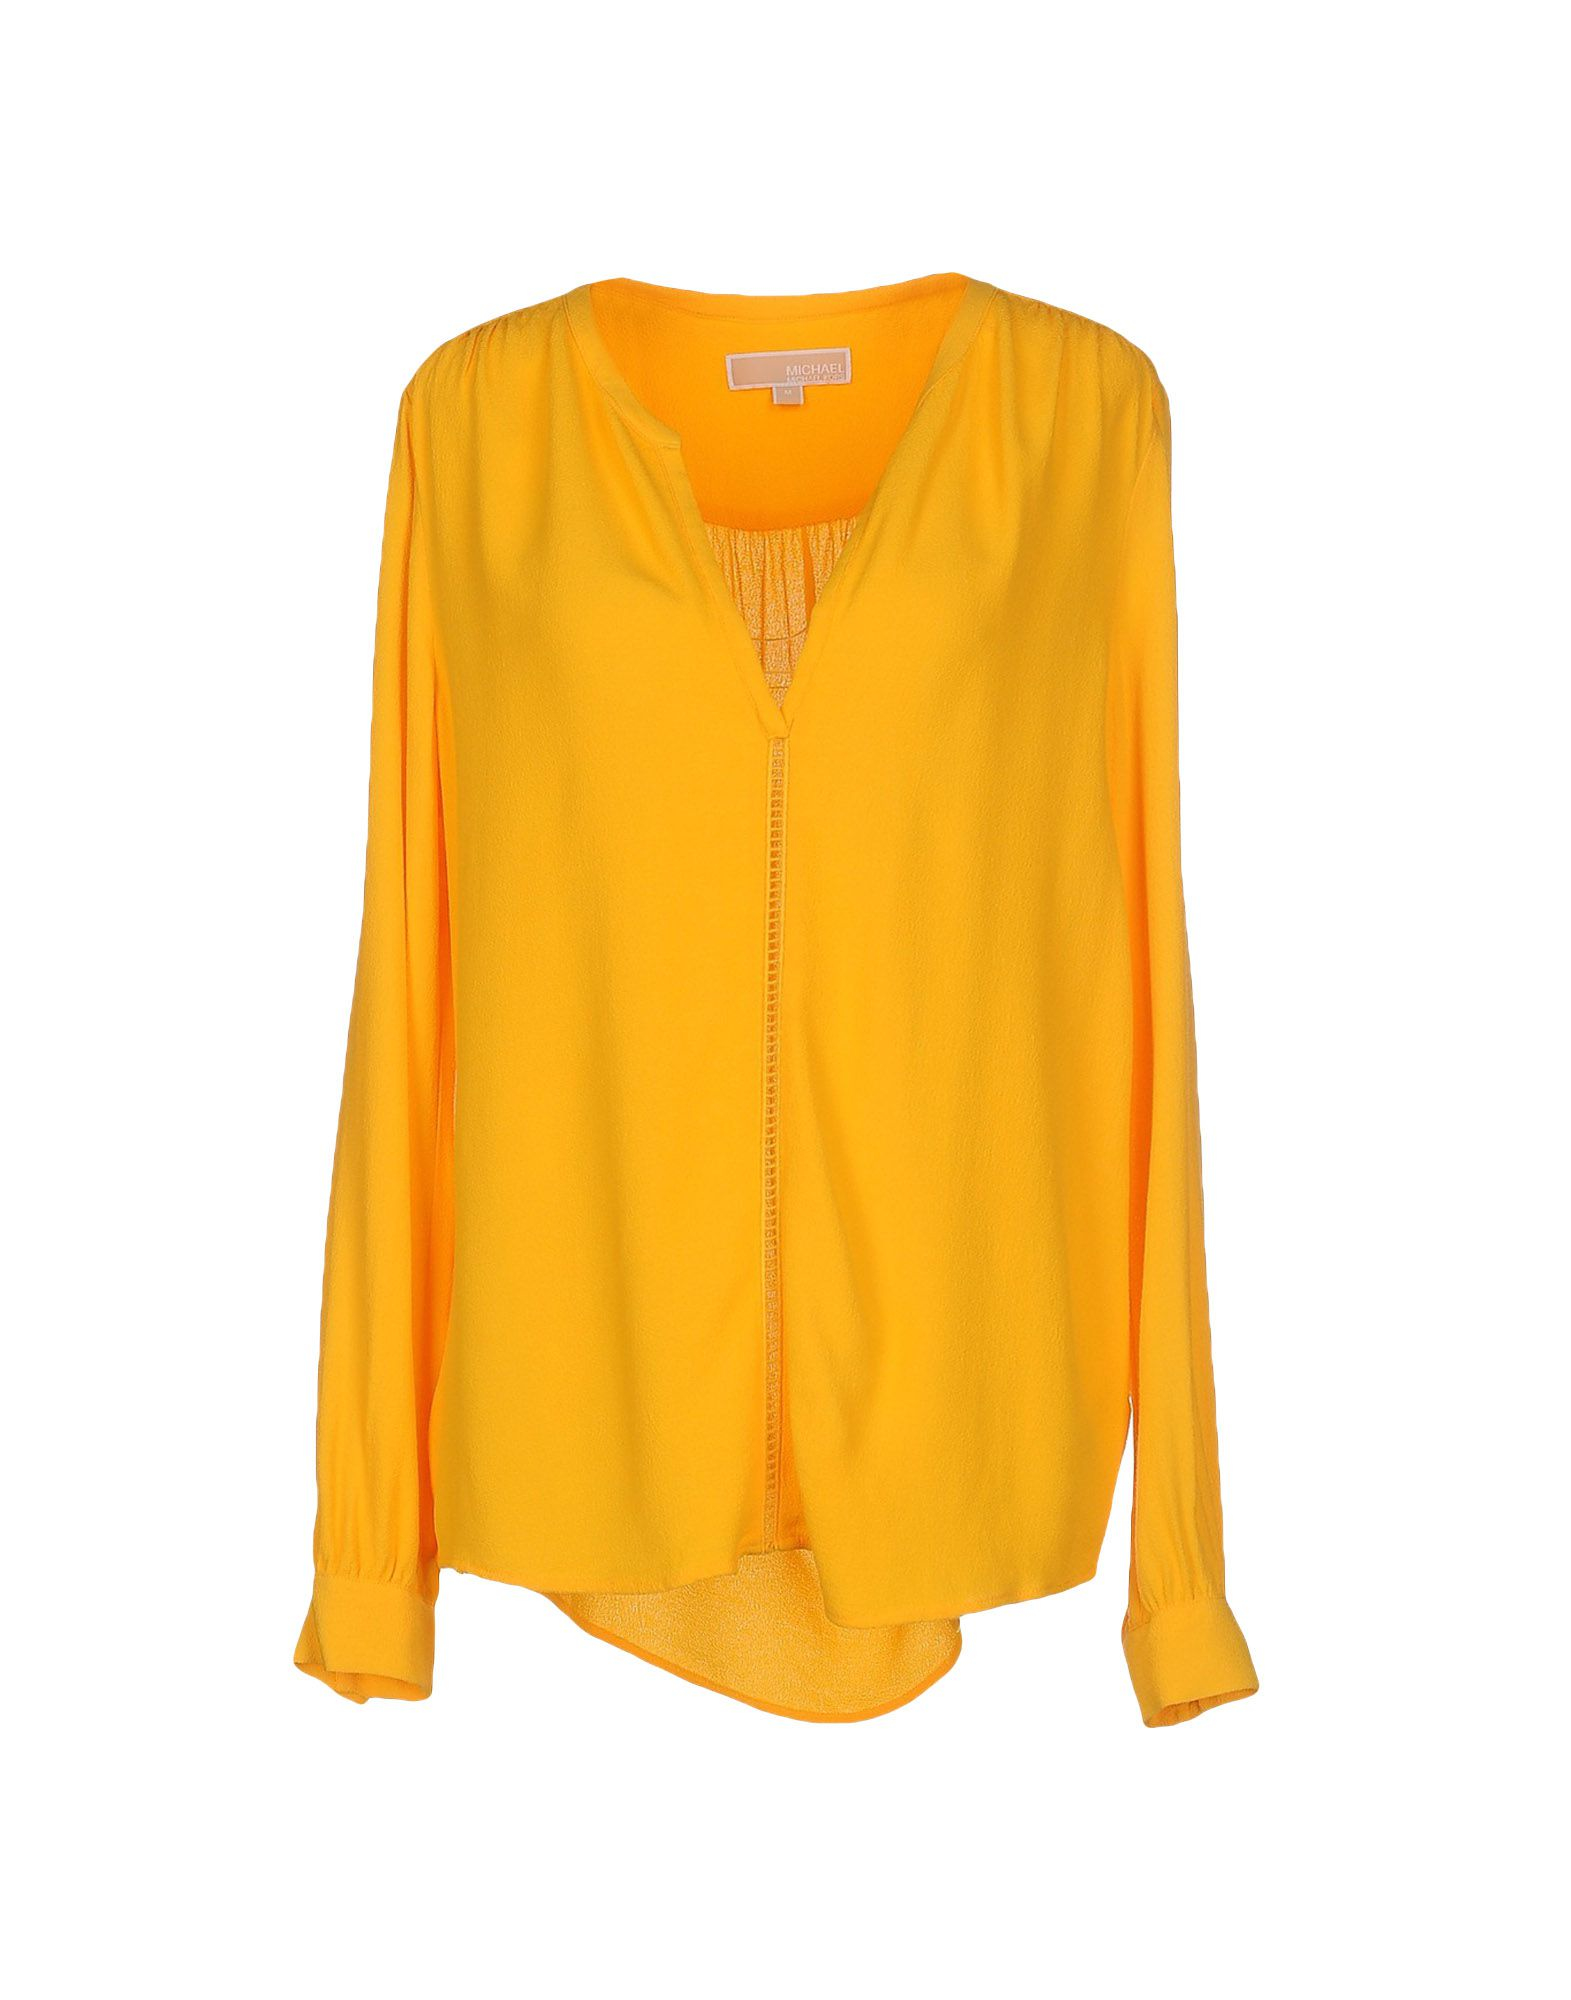 michael michael kors blouse in yellow lyst. Black Bedroom Furniture Sets. Home Design Ideas